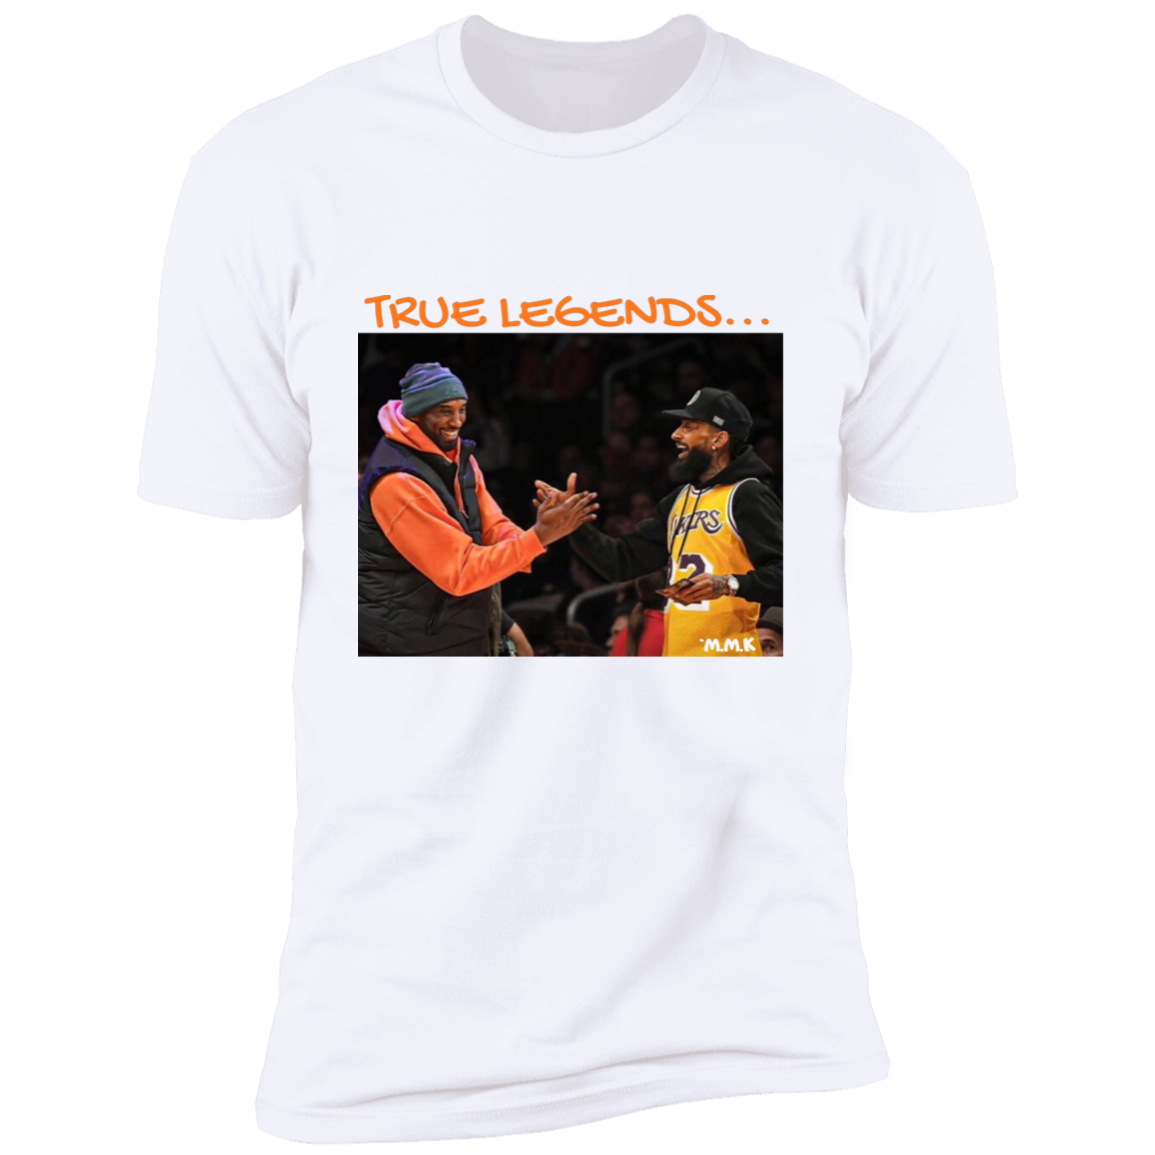 True Legends T-Shirt